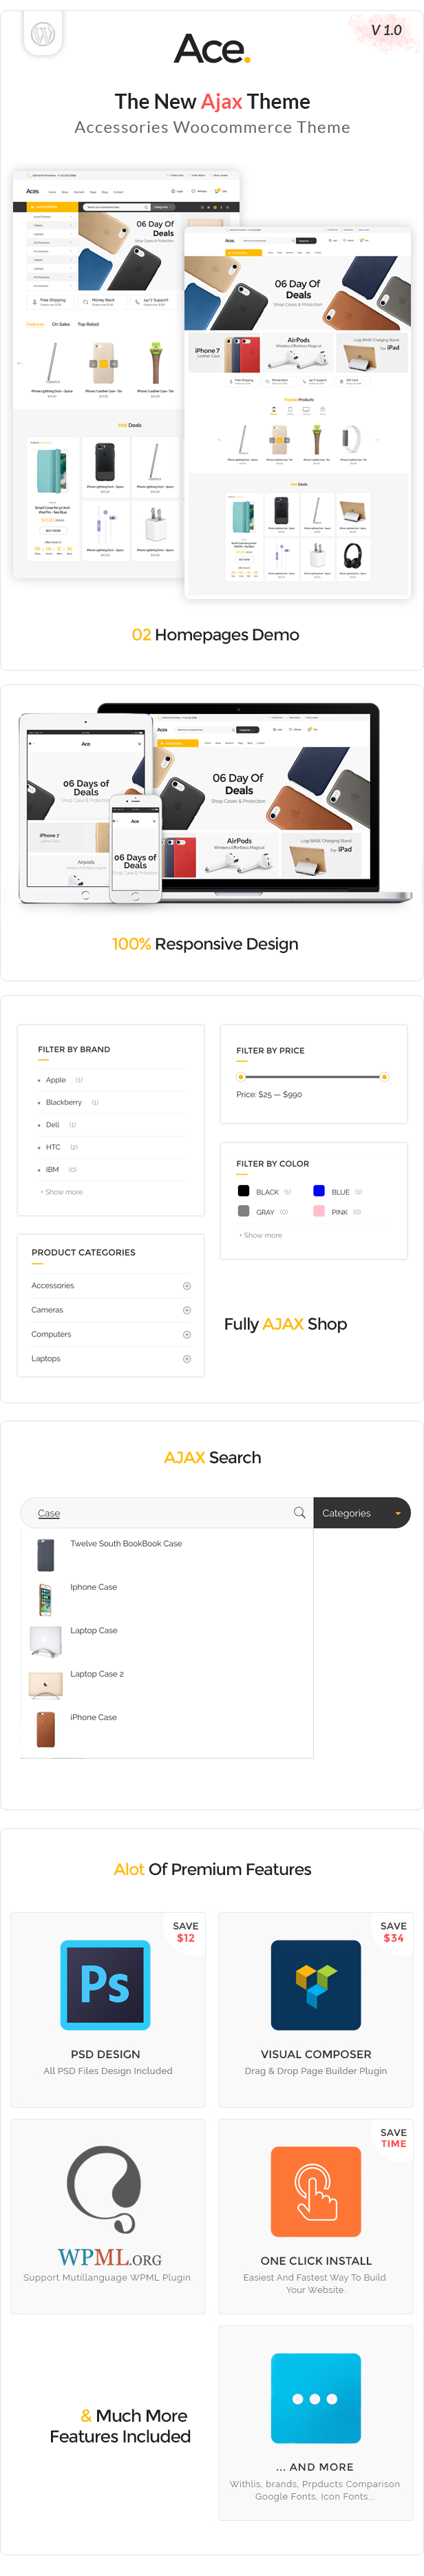 Ace - Accessories AJAX Woocommerce Theme - 1